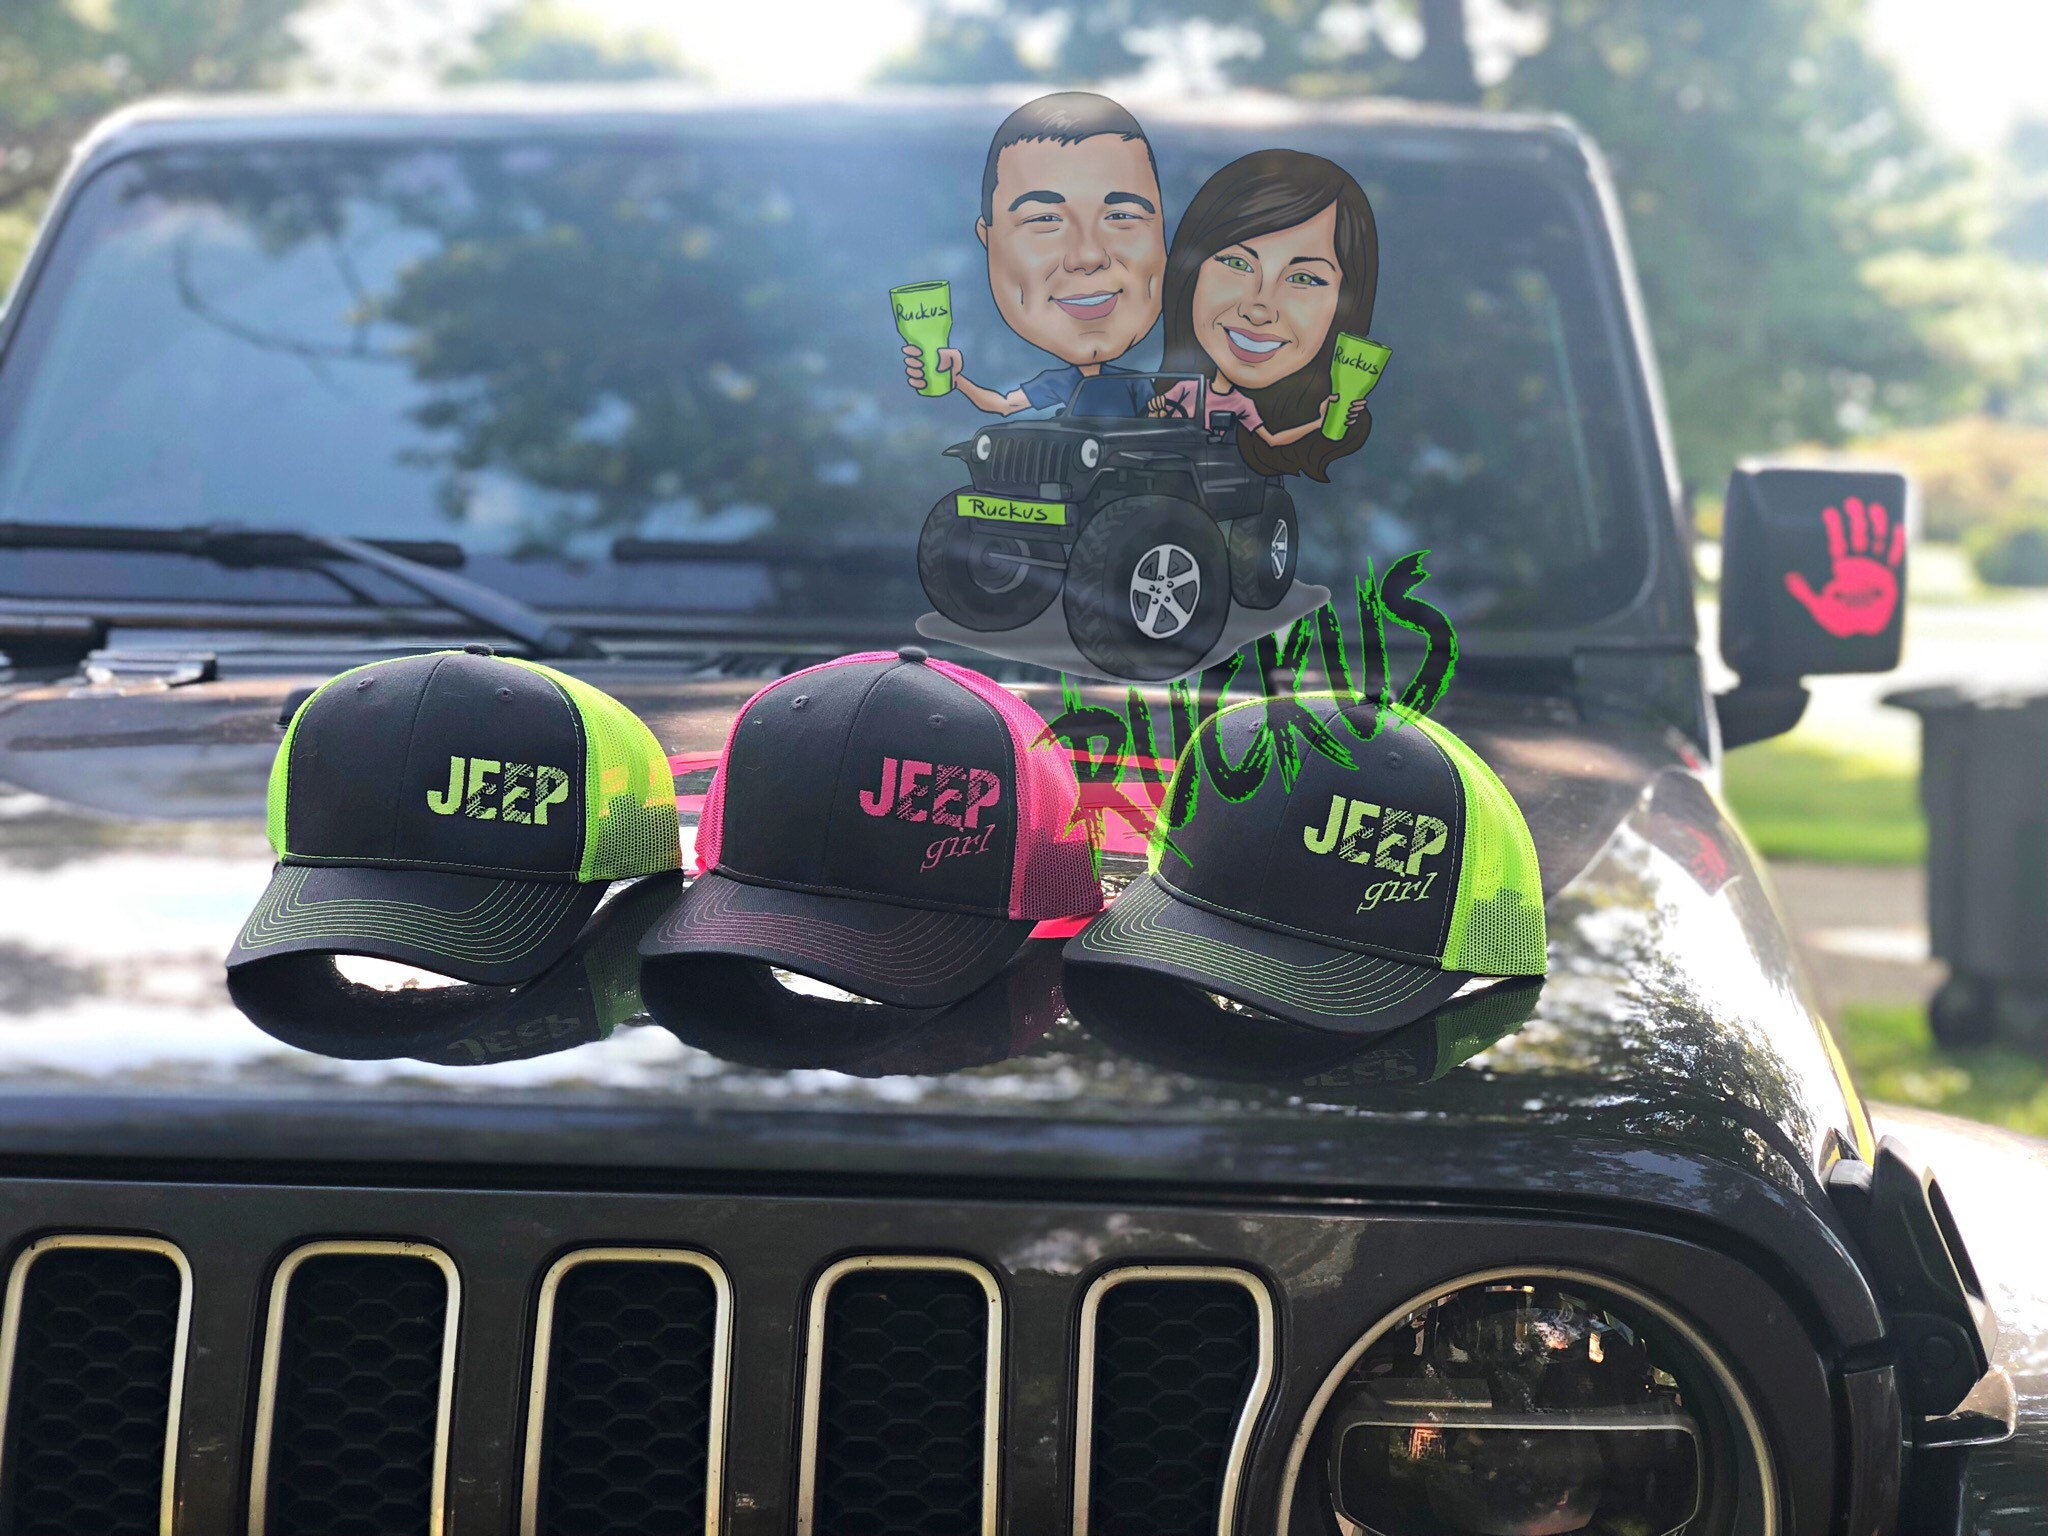 a571bd3ad7d Jeep or Jeep girl hat